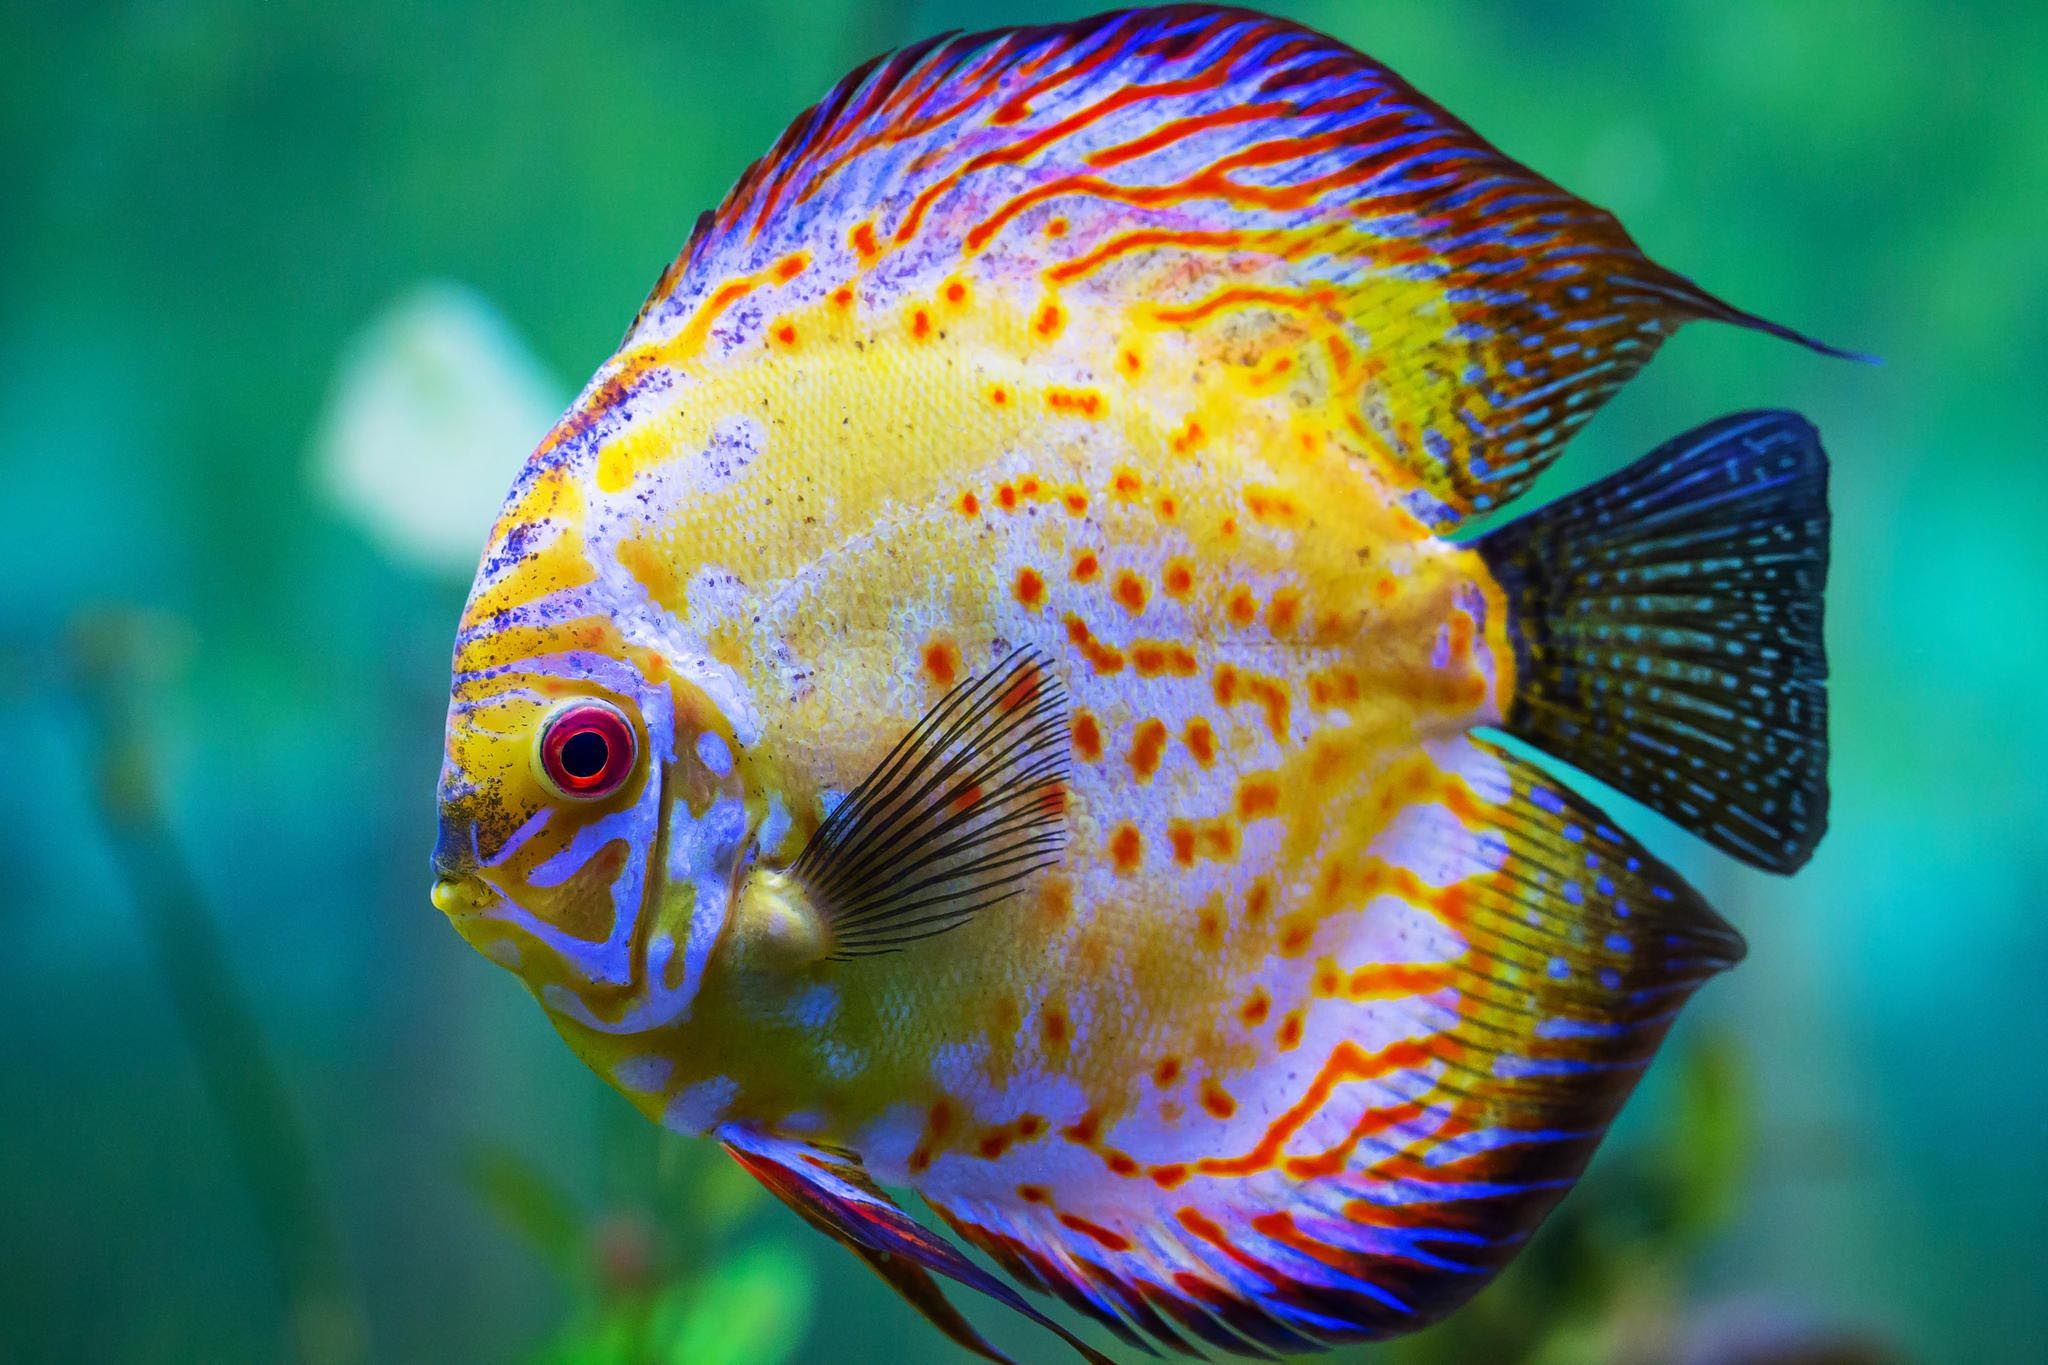 Cool Looking Freshwater Aquarium Fish | Beautiful fish ...Fresh Water Aquarium Gold Fish Images